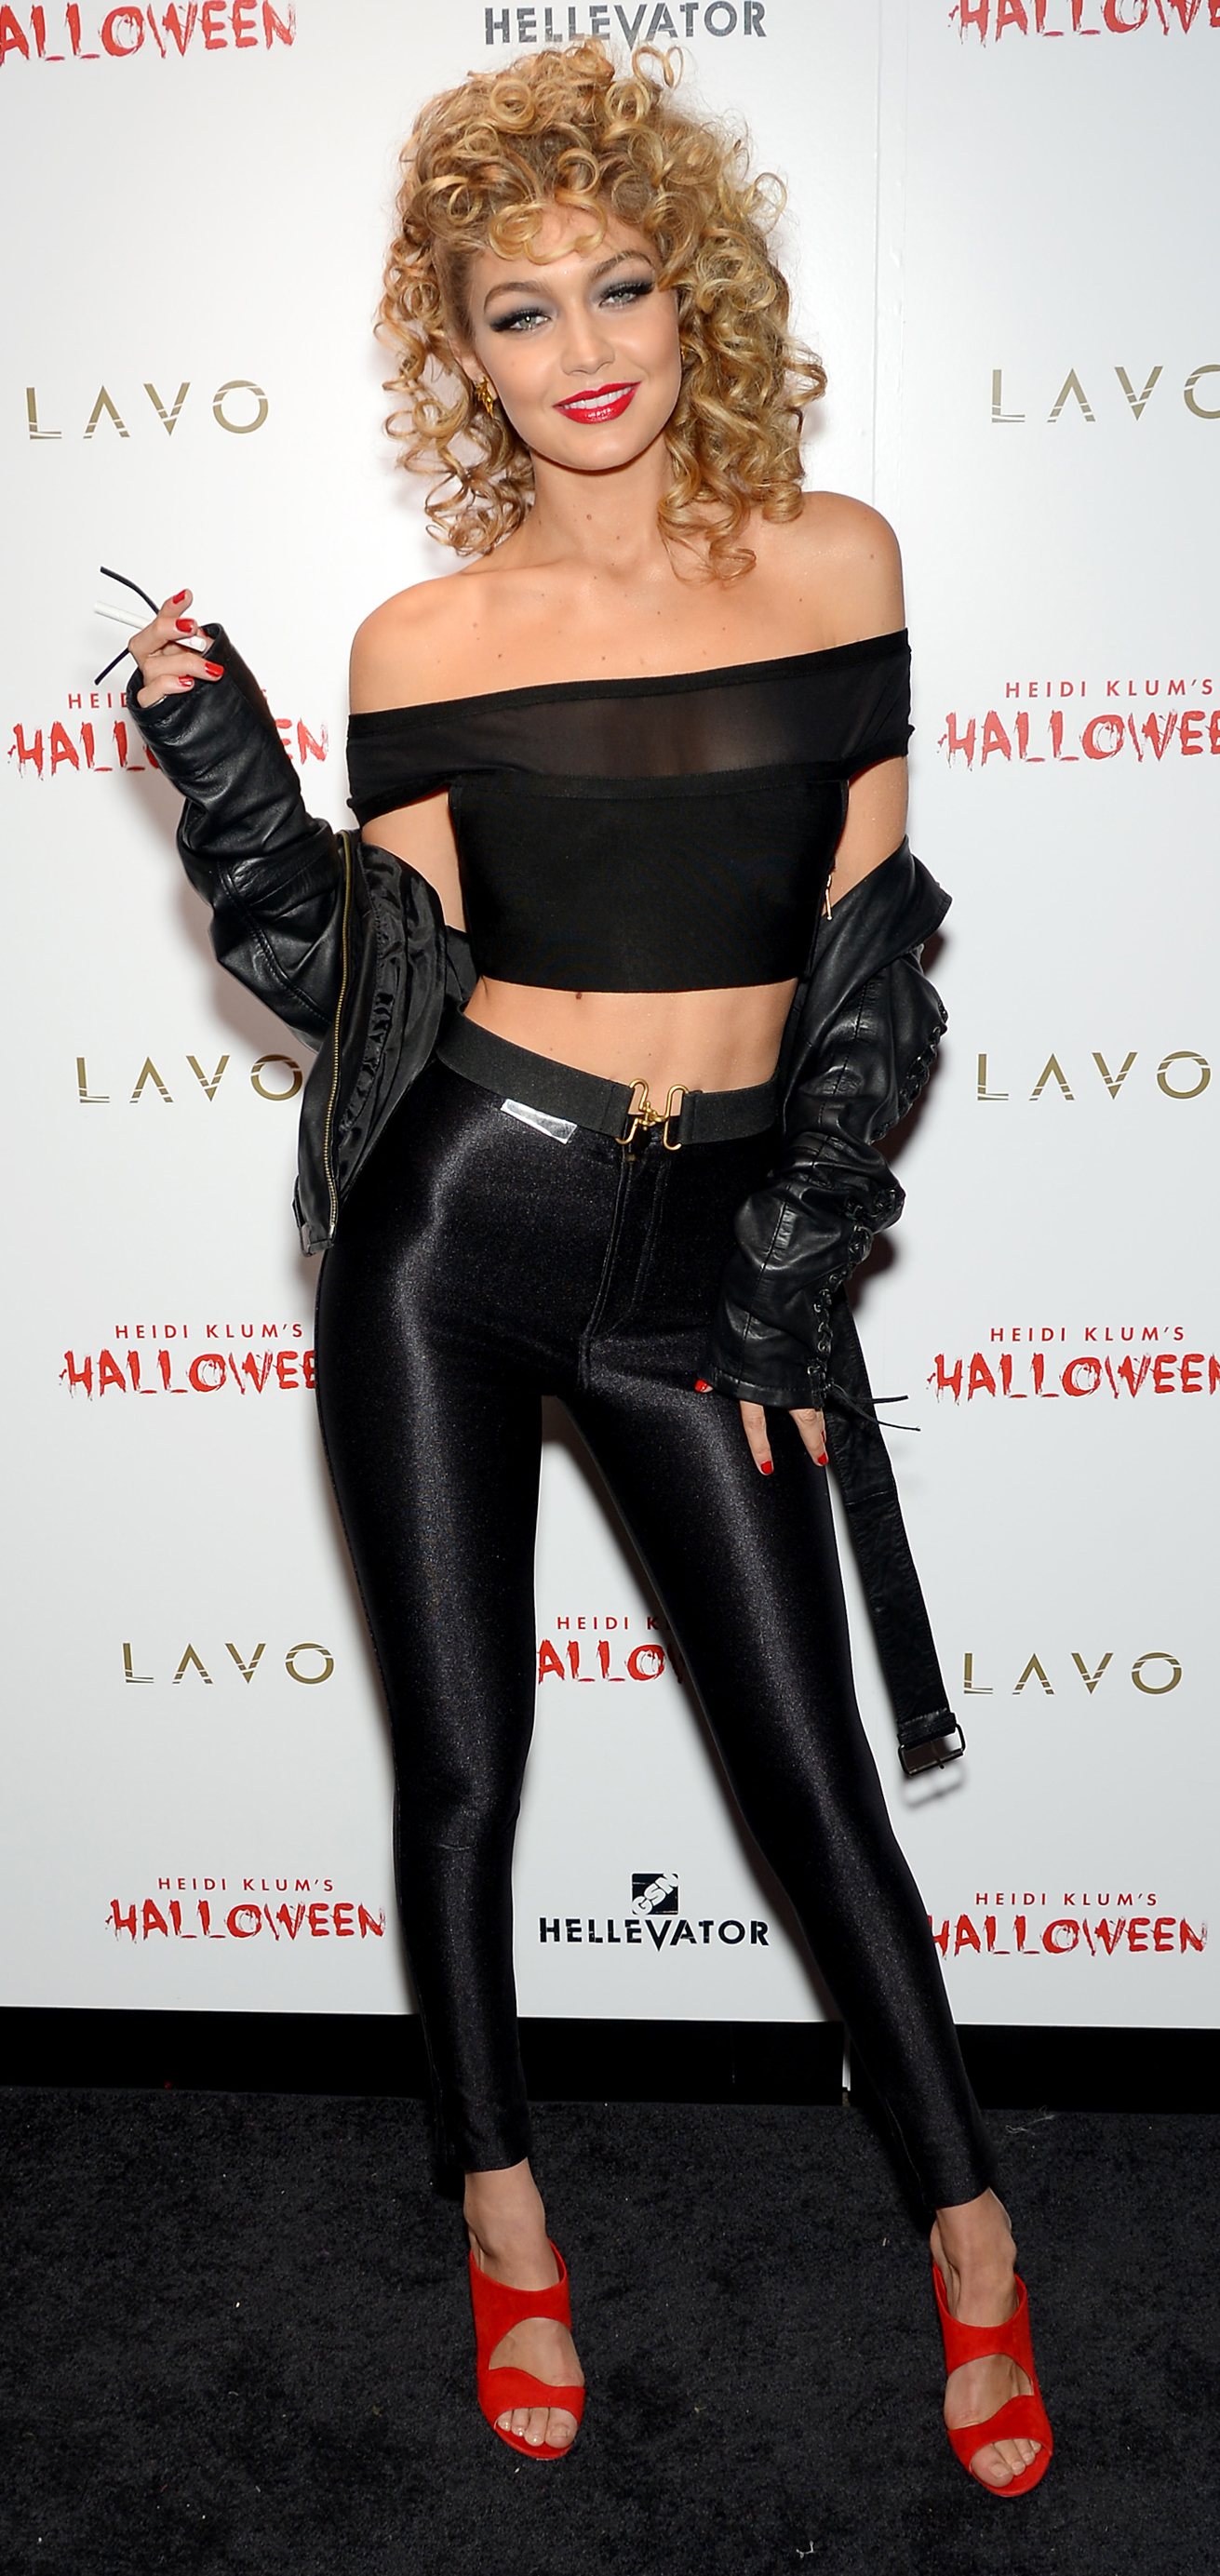 Gigi Hadid Was Sandra Dee For Halloween - and Her Costume Was Absolutely Flawless